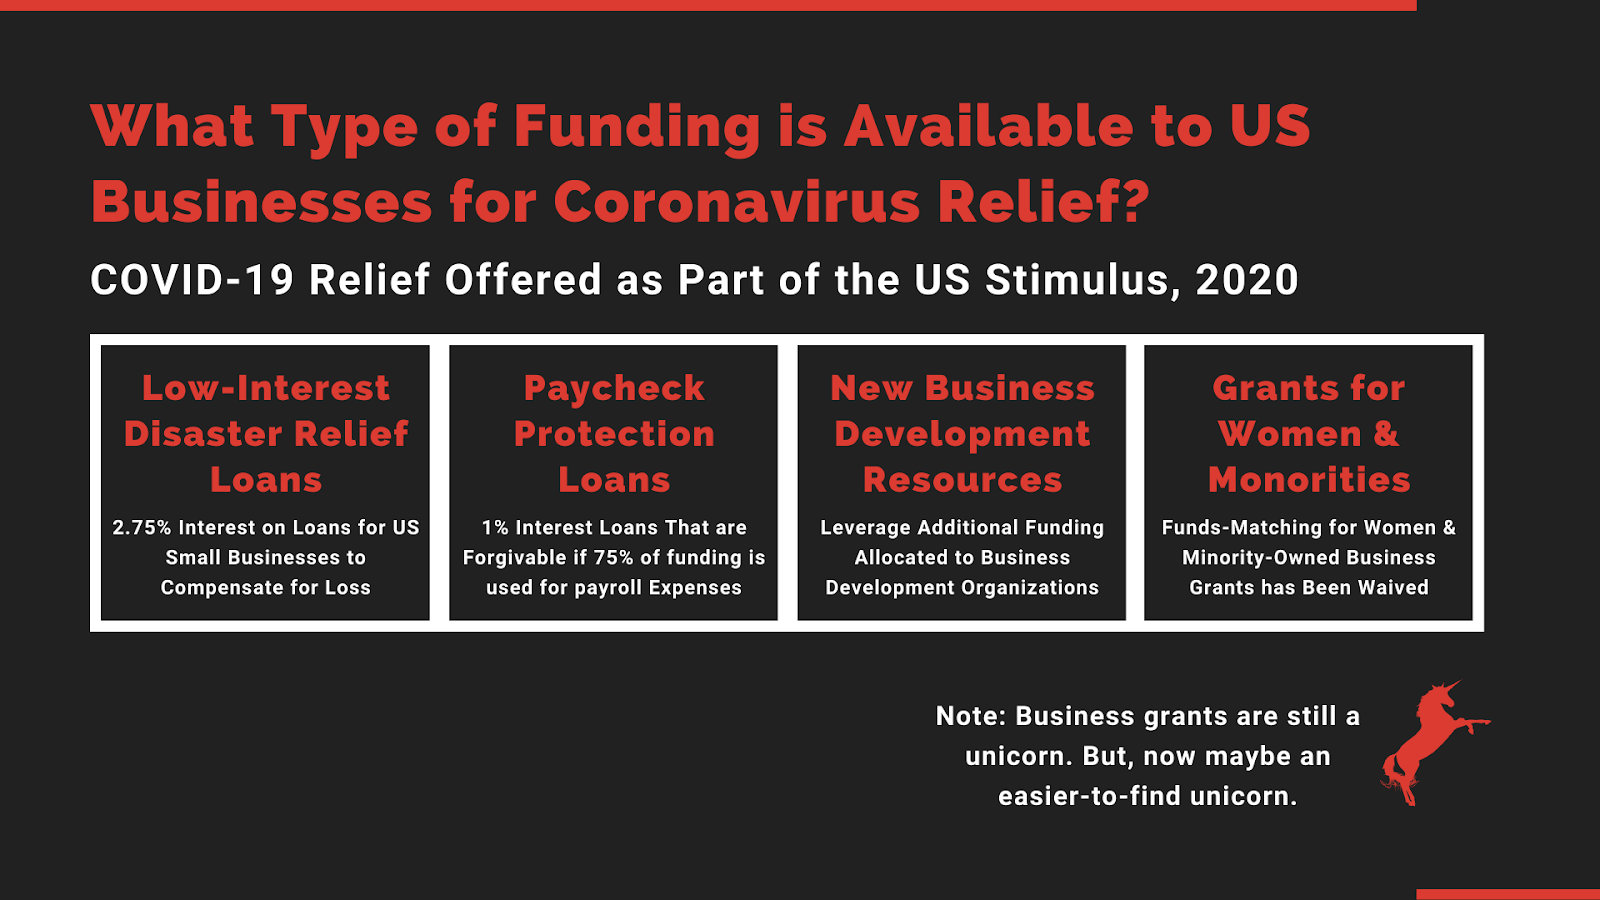 What Type of Funding is Available to Help Small Businesses? COVID-19